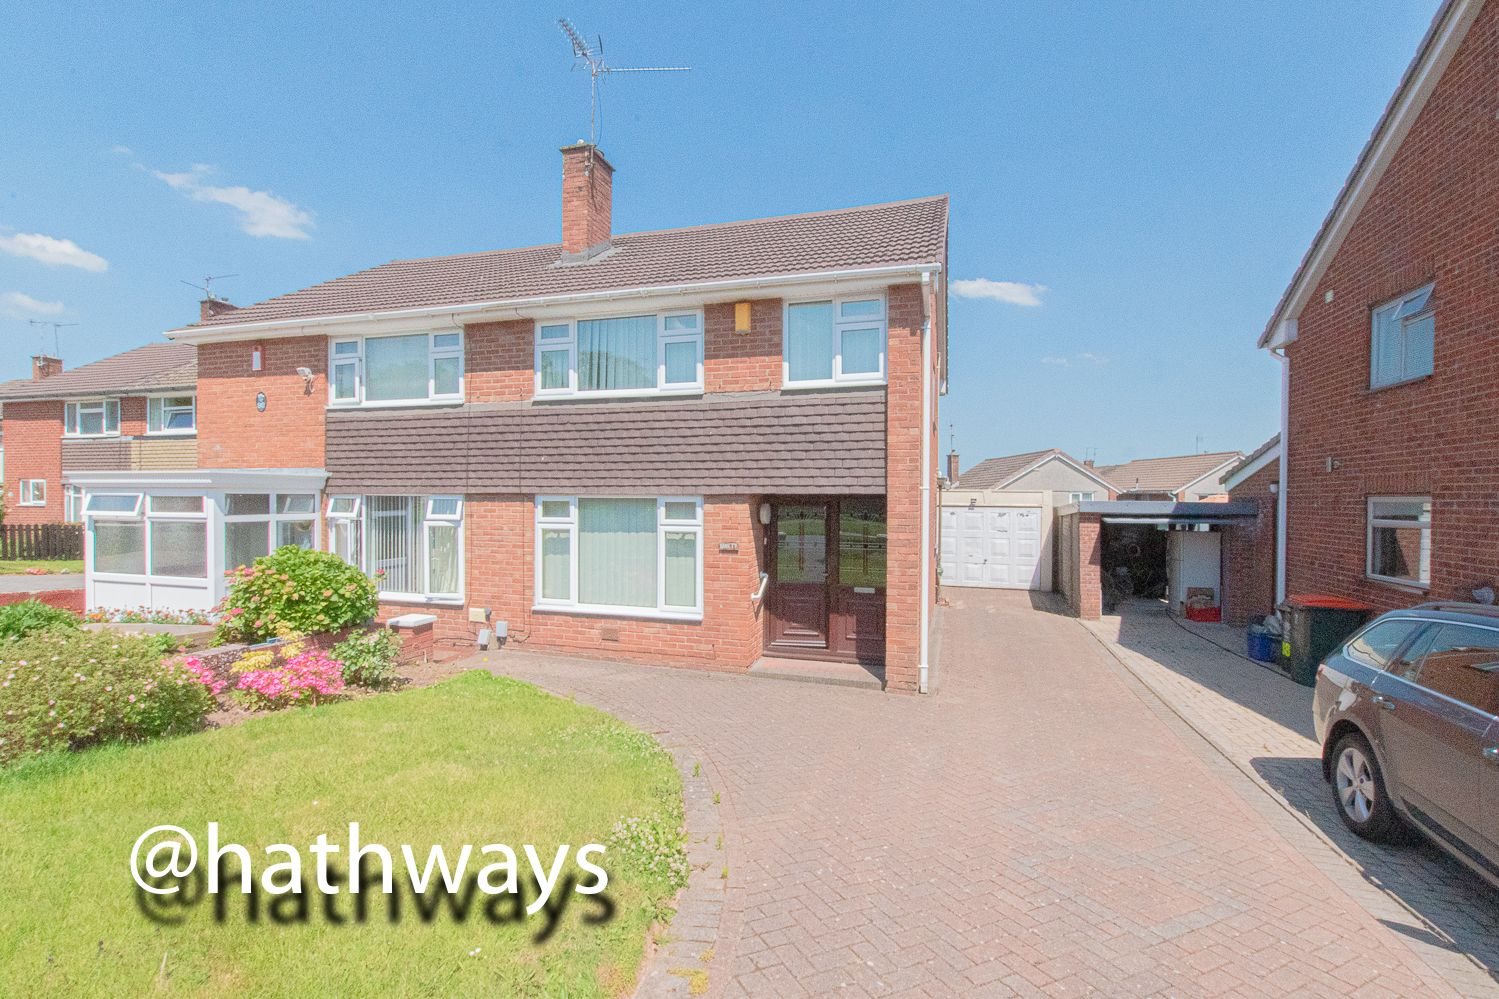 3 bed house for sale in Larch Grove  - Property Image 2